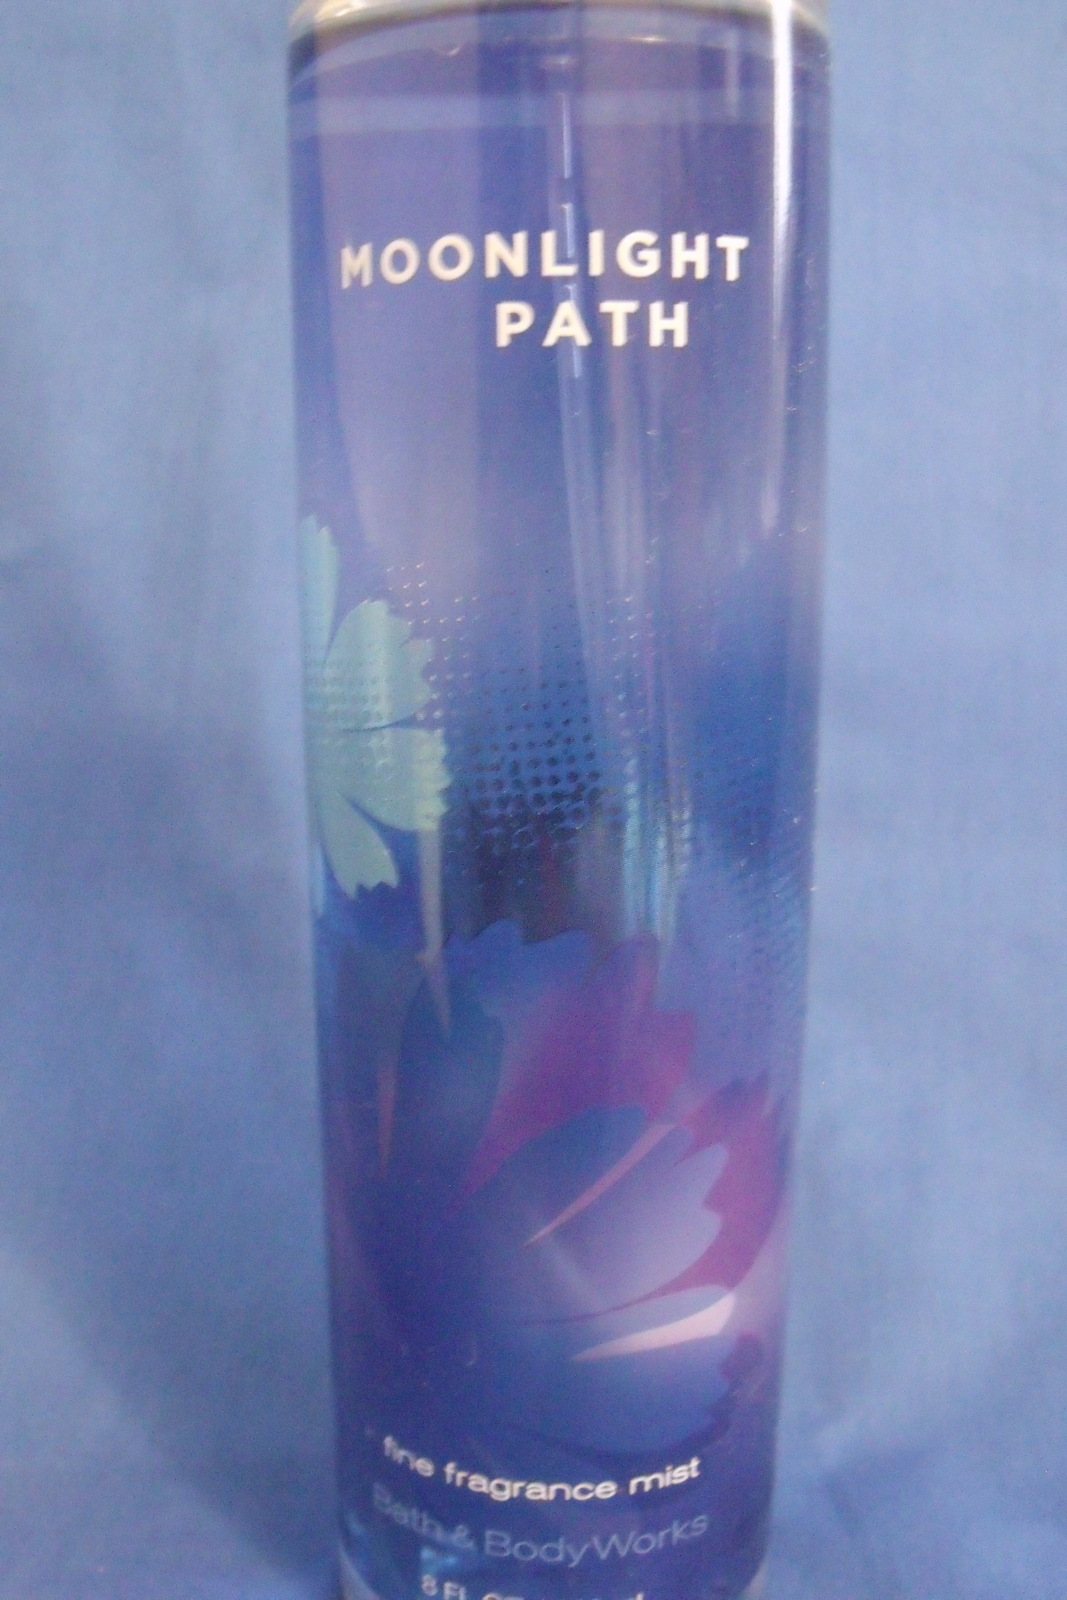 Bath and body works new moonlight path fine fragrance mist for Bath and body works scents best seller